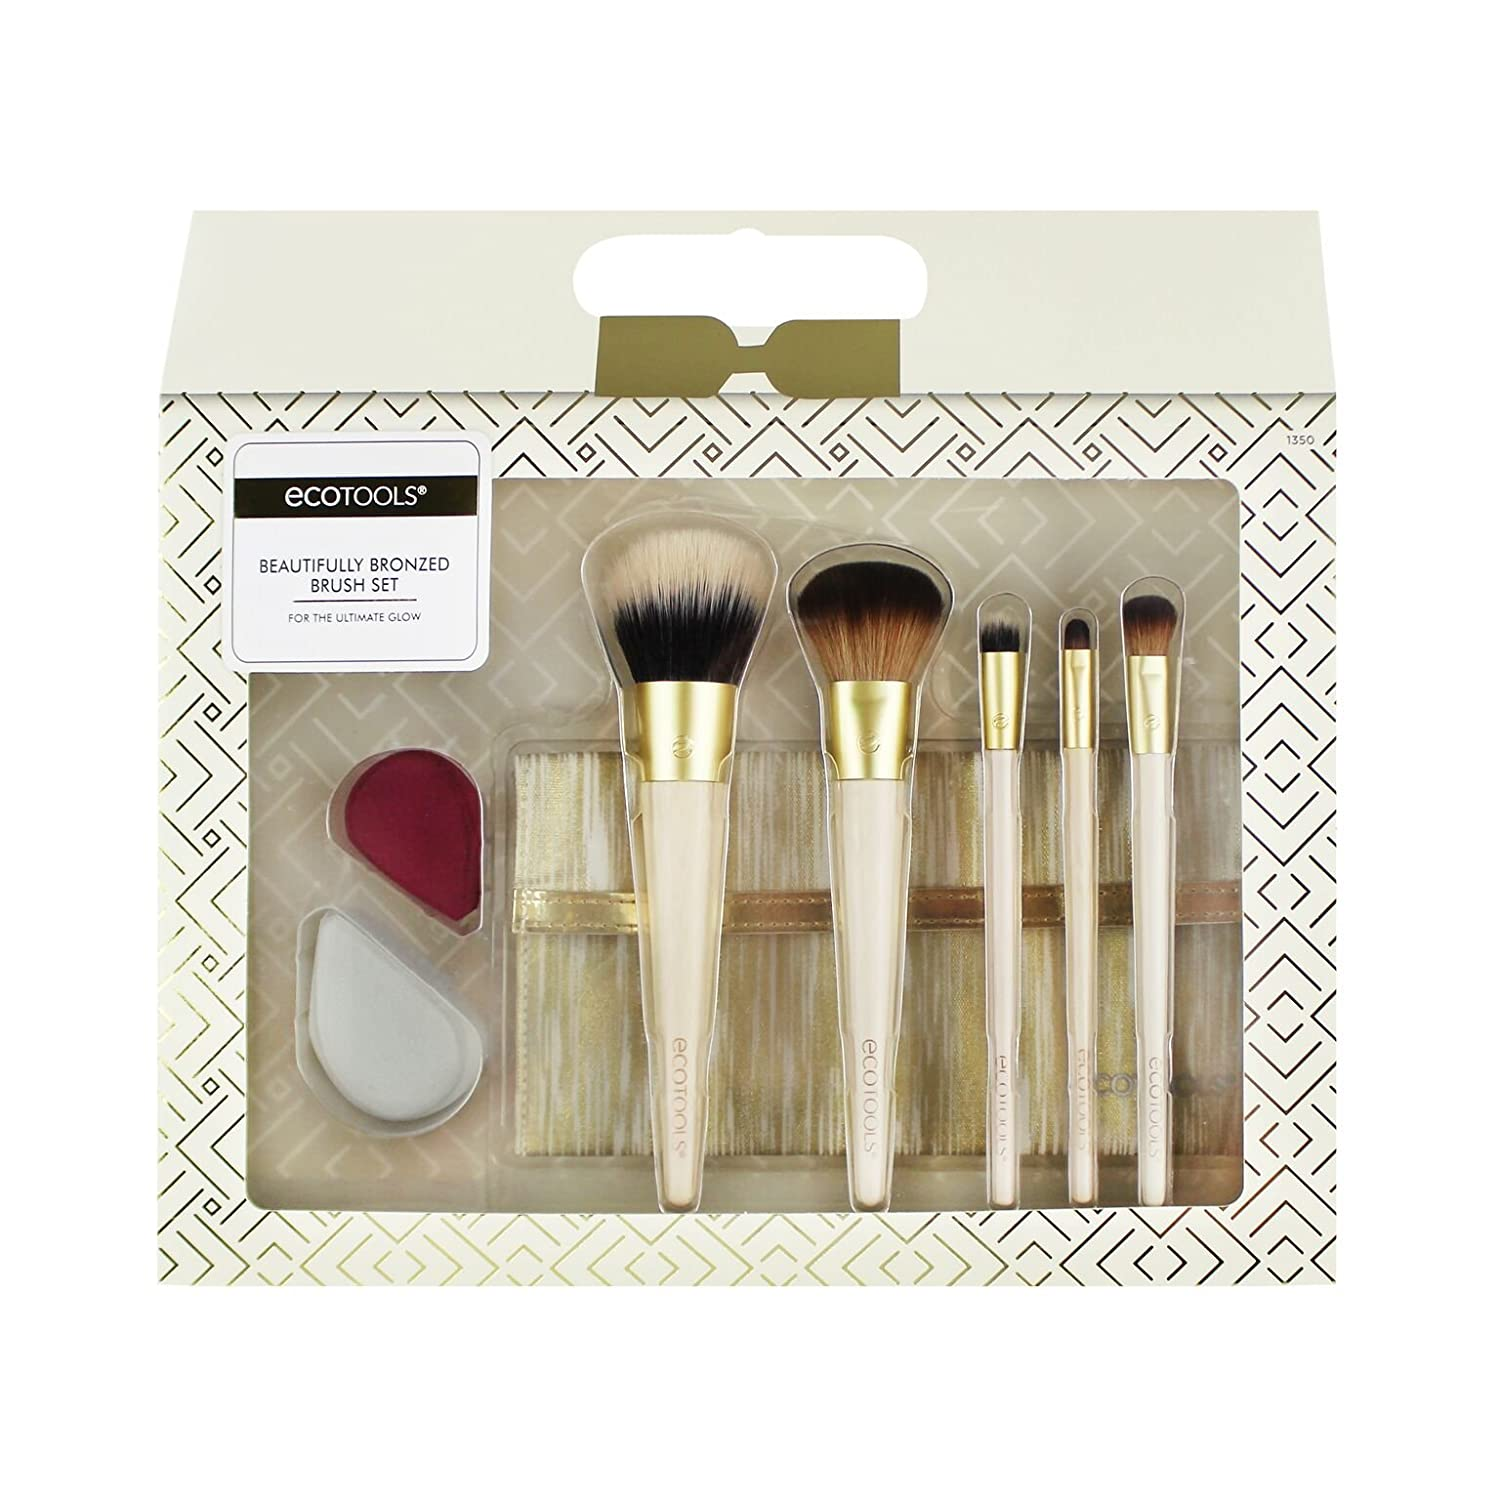 EcoTools Holiday Beautifully Bronzed Brush Set Paris Presents Incorporated